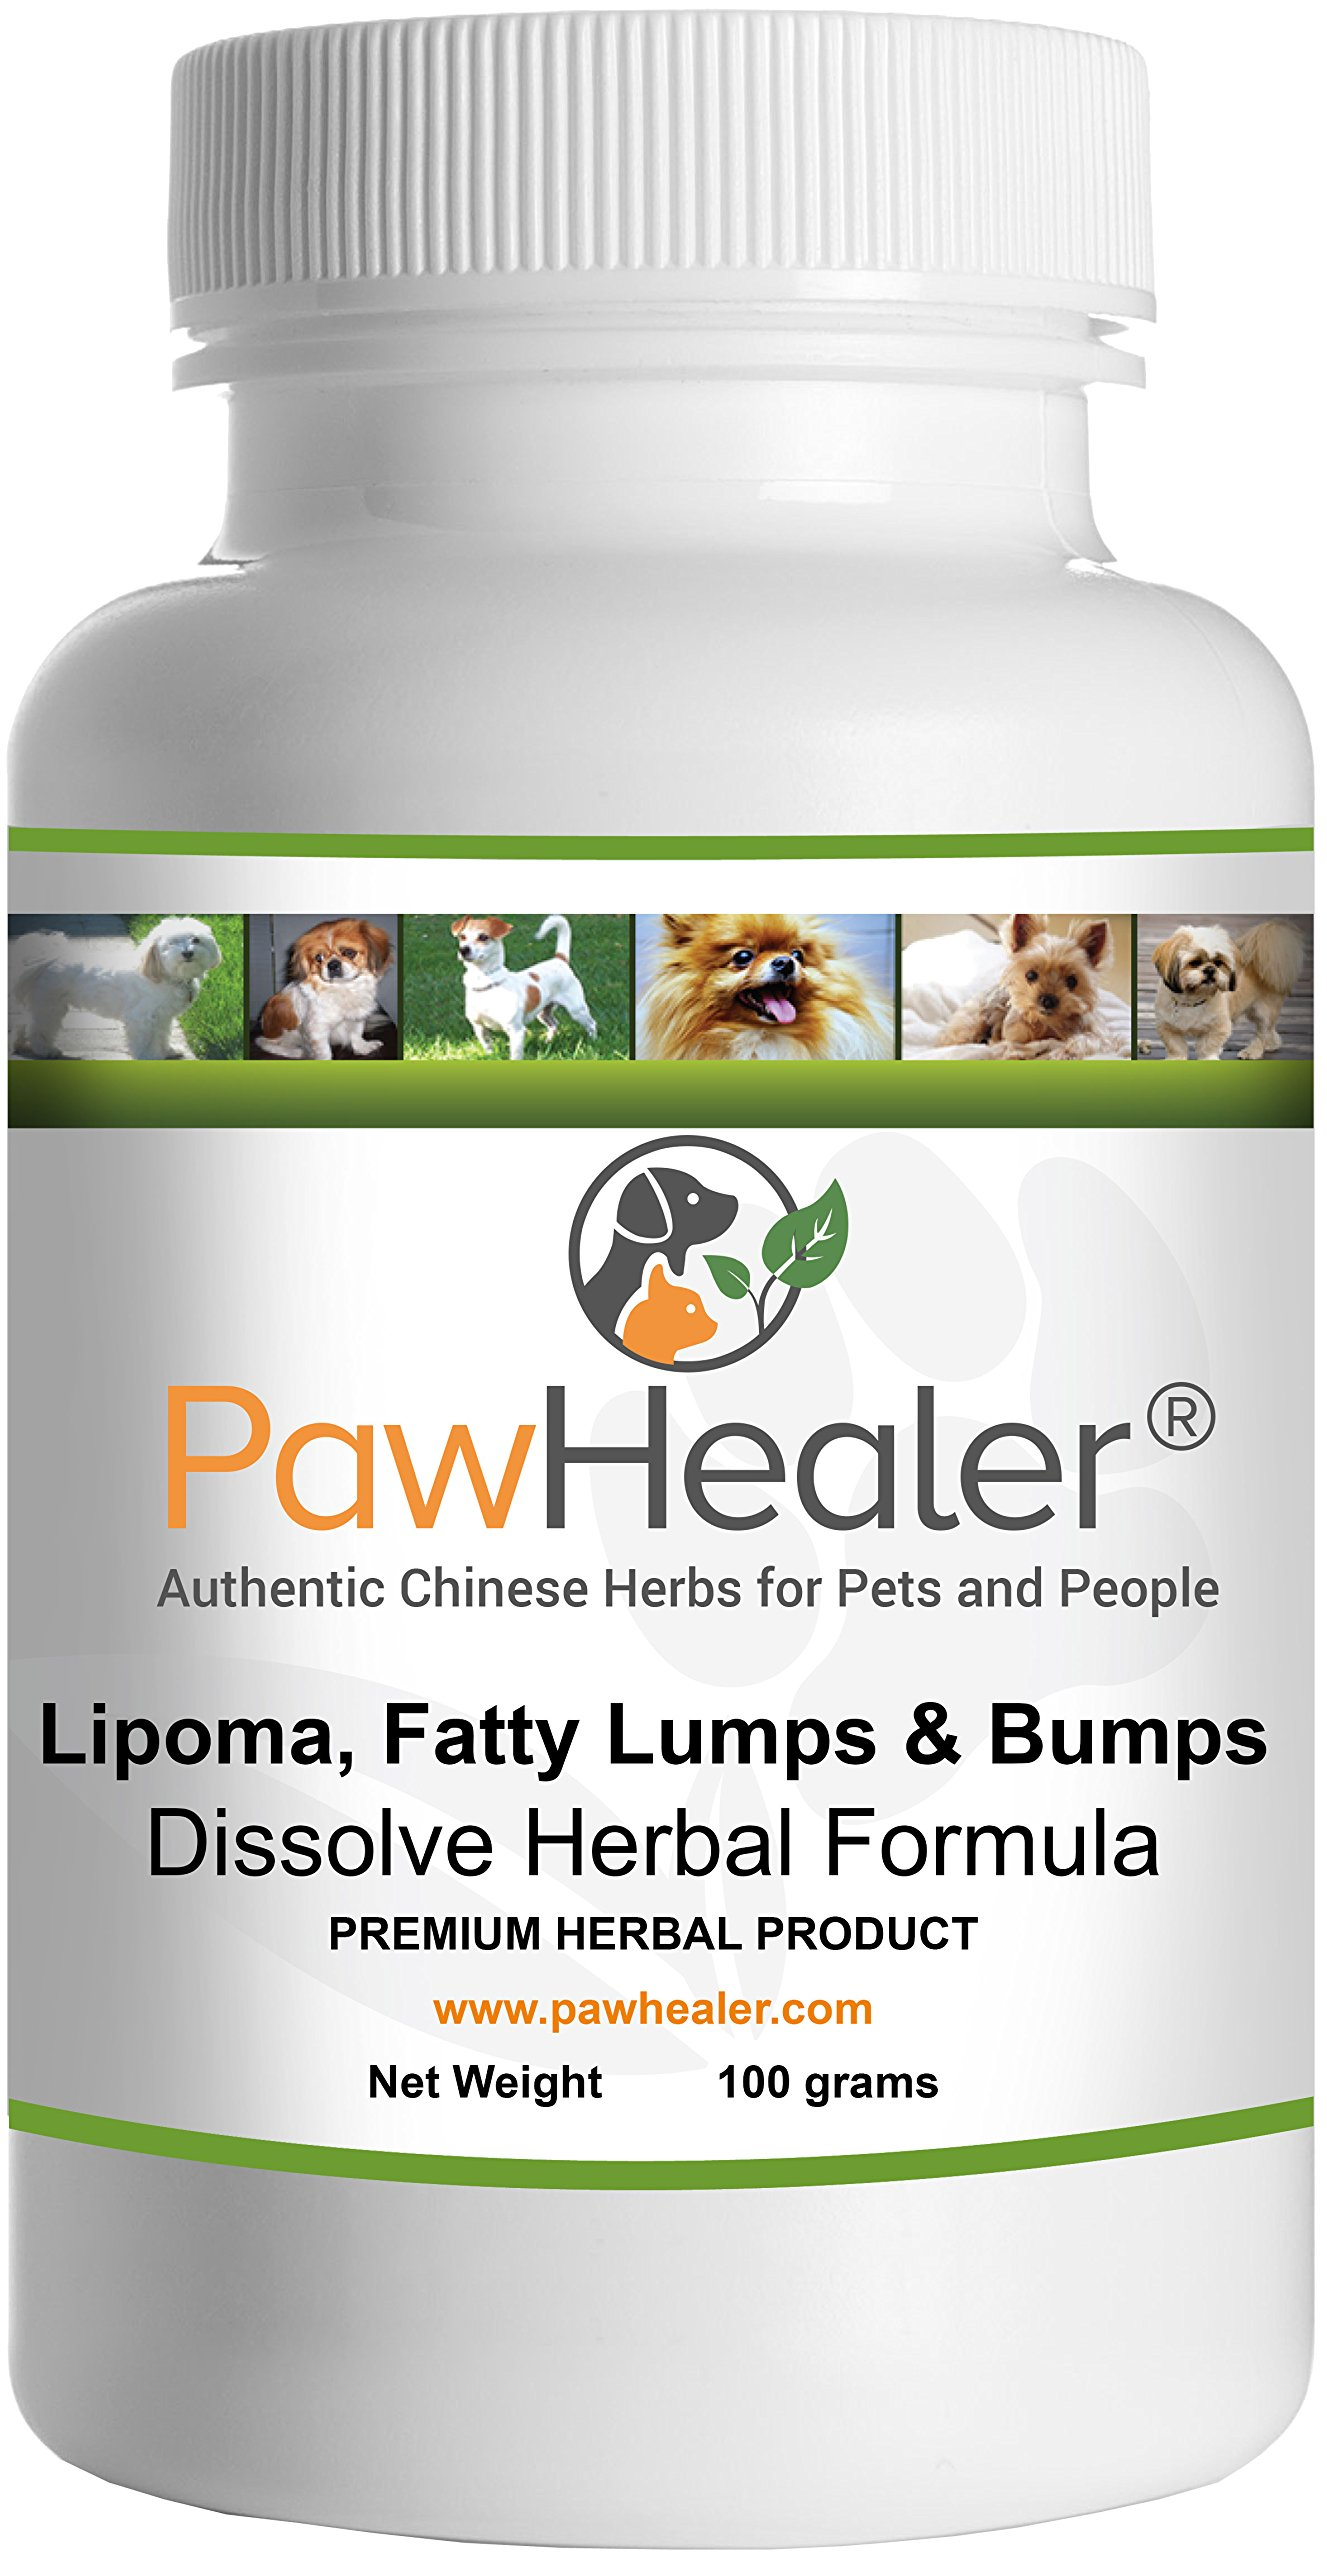 PawHealer® Dissolve Herbal Formula - 100 Grams Powder - Remedy for Fatty Lumps & Bumps in Dogs & Pets ... by PawHealer®